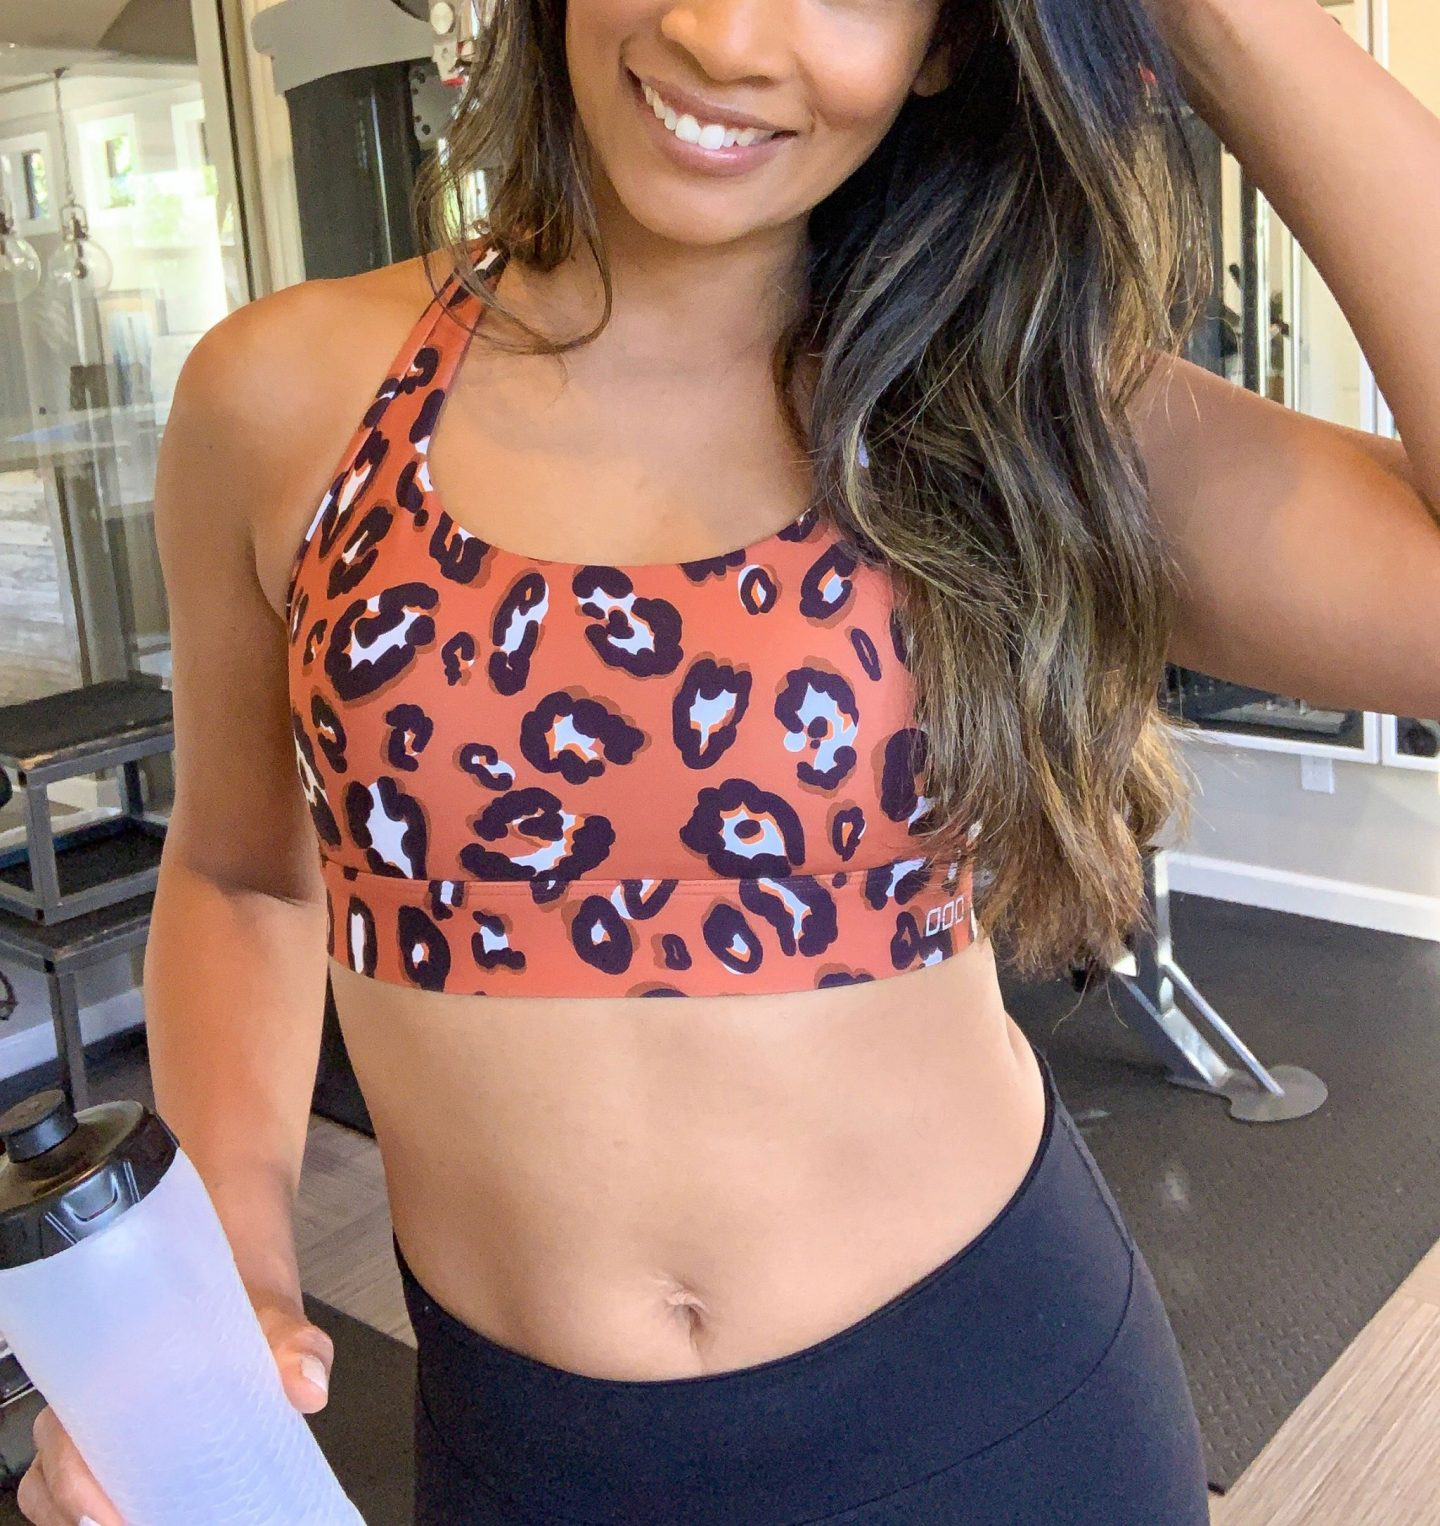 SPORTS BRA, WORKOUT GEAR, CUTE WORKOUT CLOTHES, FITNESS, FIT MOM, LORNA JANE